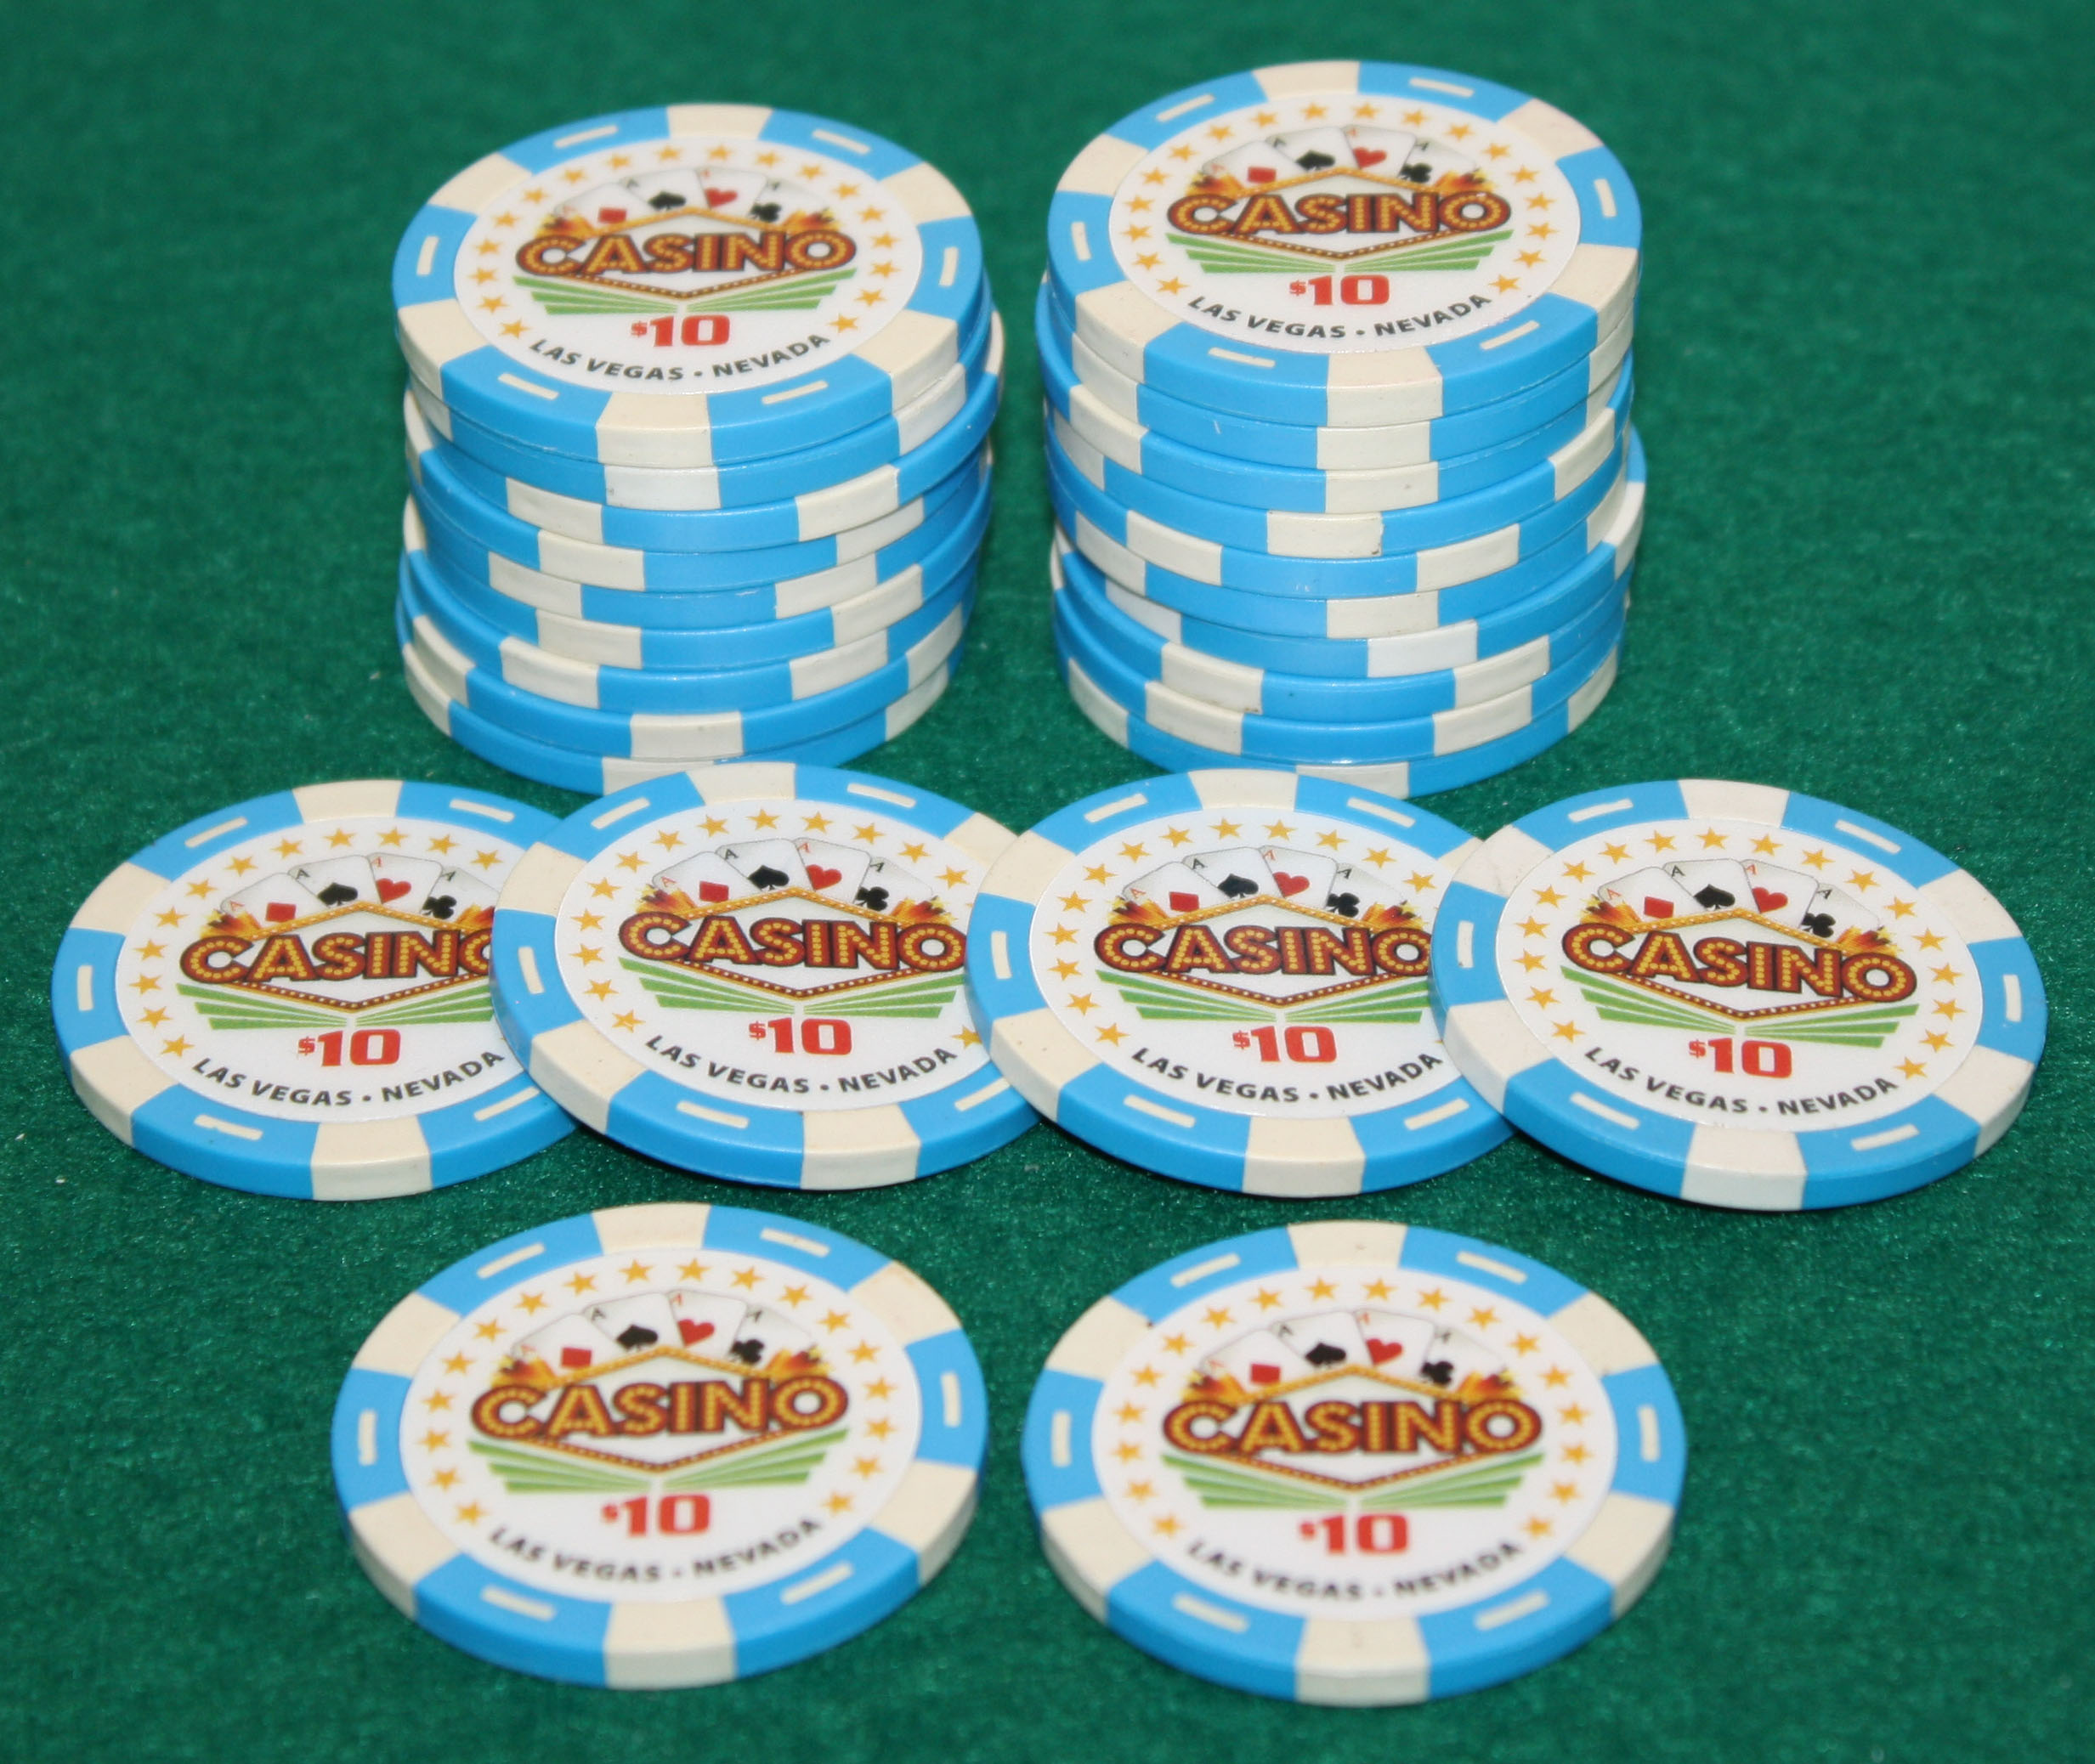 $10 Pro Vegas Casino Chips *Super High Quality* Poker Chip 11.5 Grams (QTY: 25) by